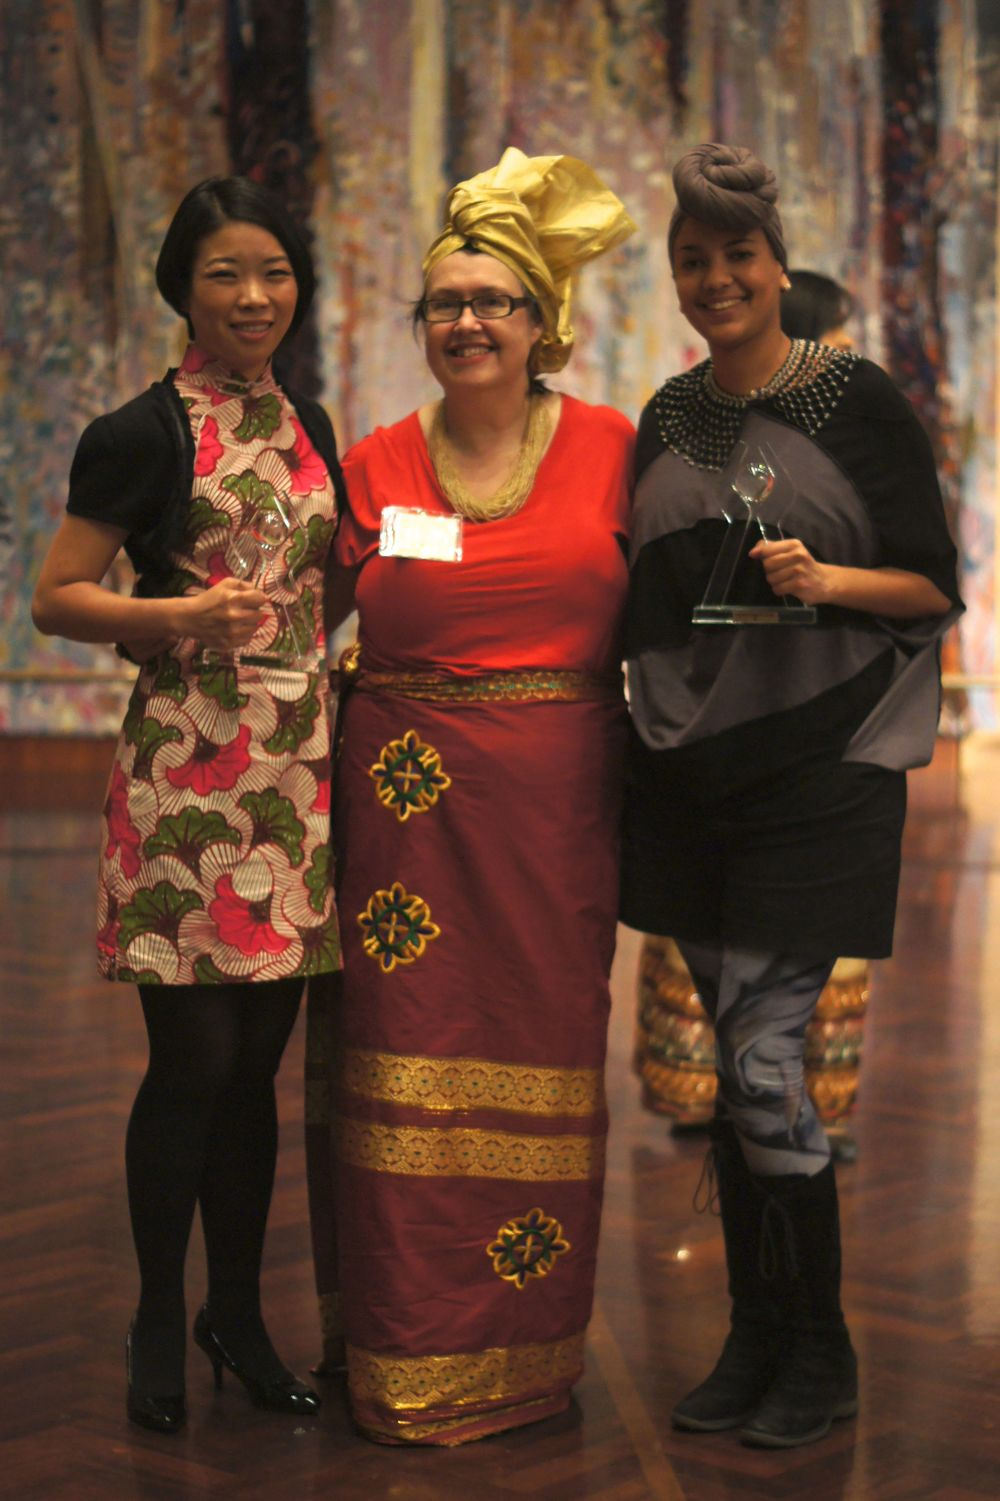 PHOTO: Celebrating Africans in Australia Award night 2014